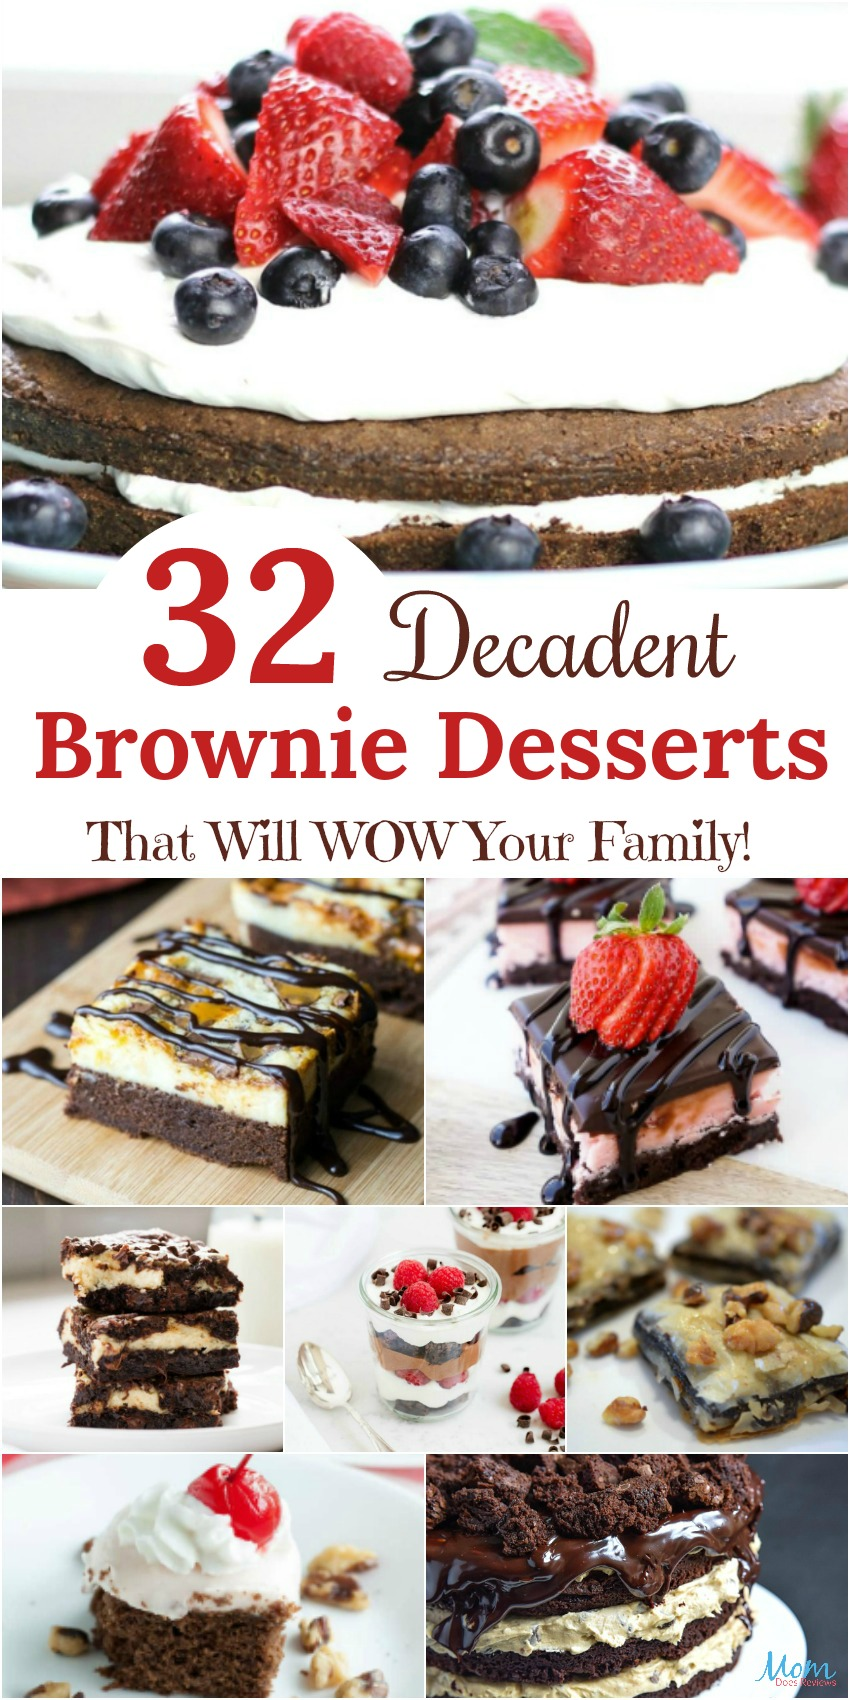 32 Decadent Brownie Desserts That Will WOW Your Family